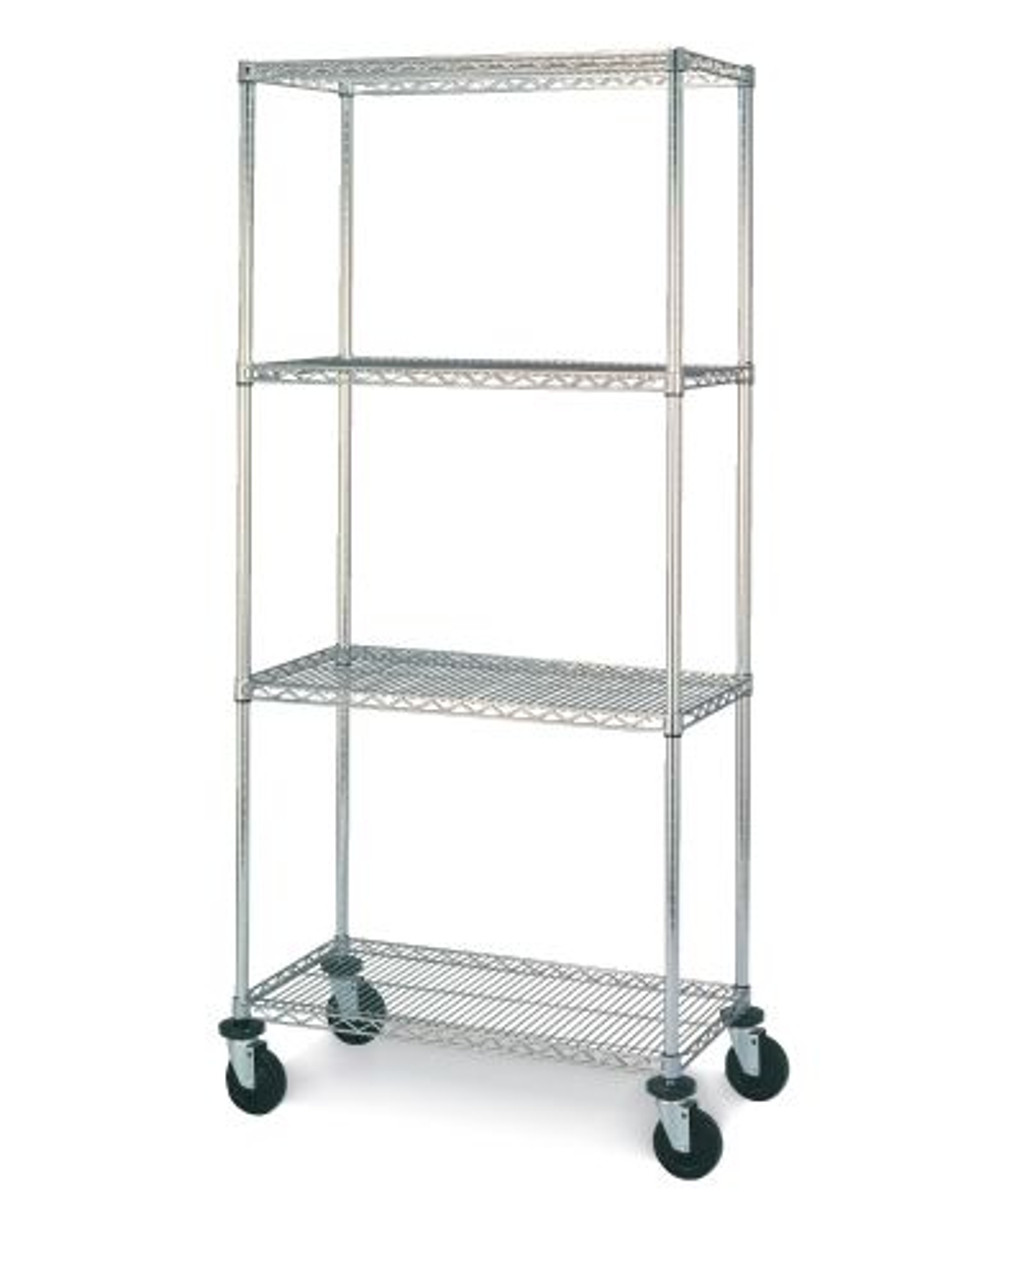 "Olympic 24"" Deep 4 Shelf Mobile Carts - Chrome - 24"" x 42"" x 68"" MJ2442-63UC"